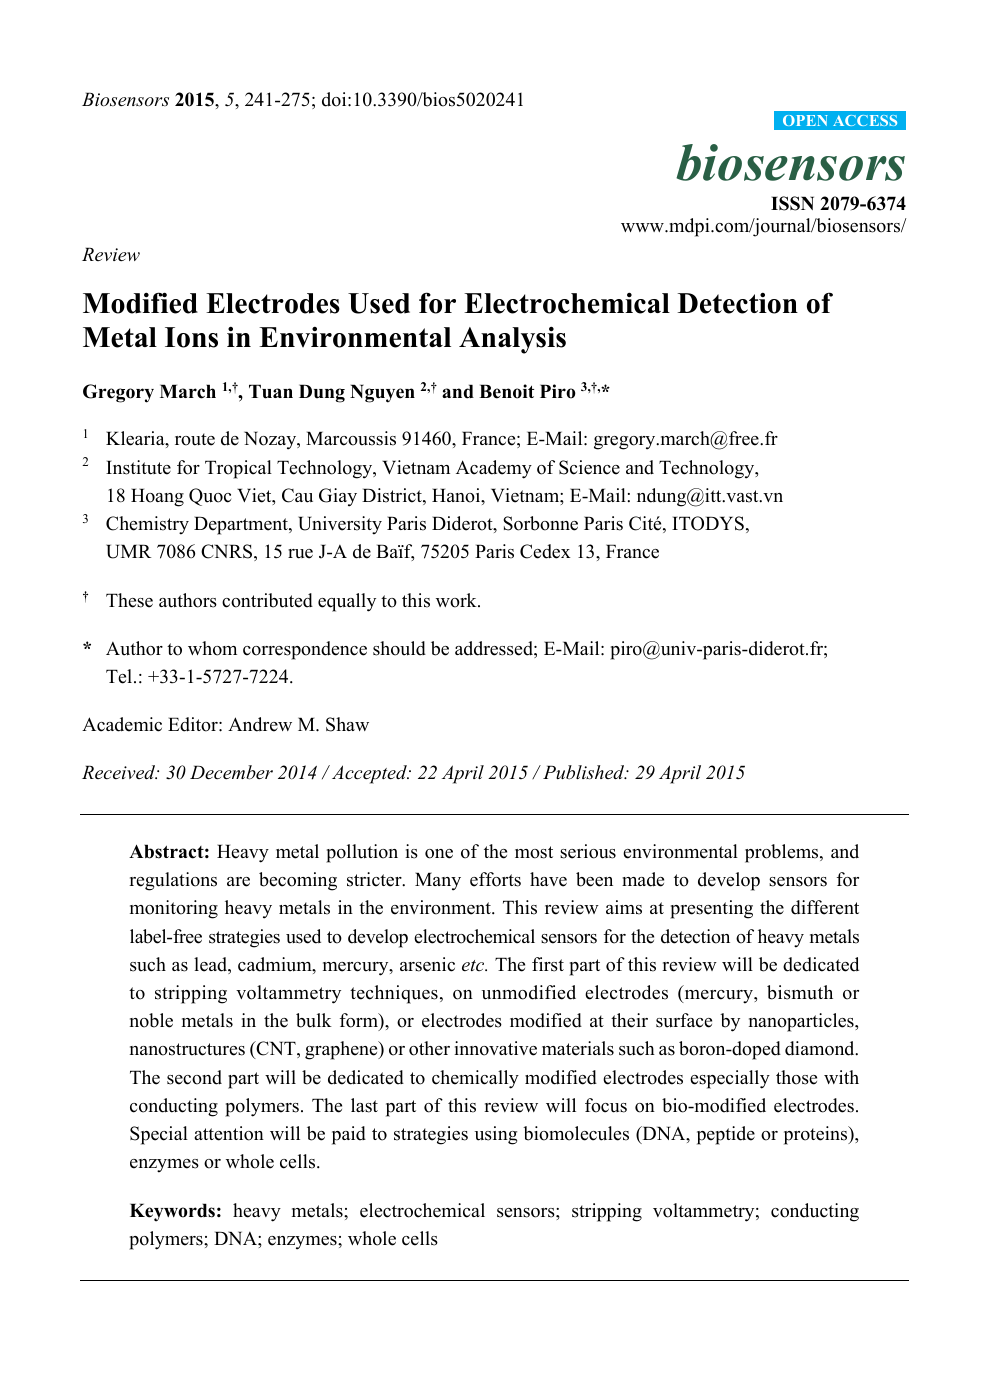 Modified Electrodes Used for Electrochemical Detection of